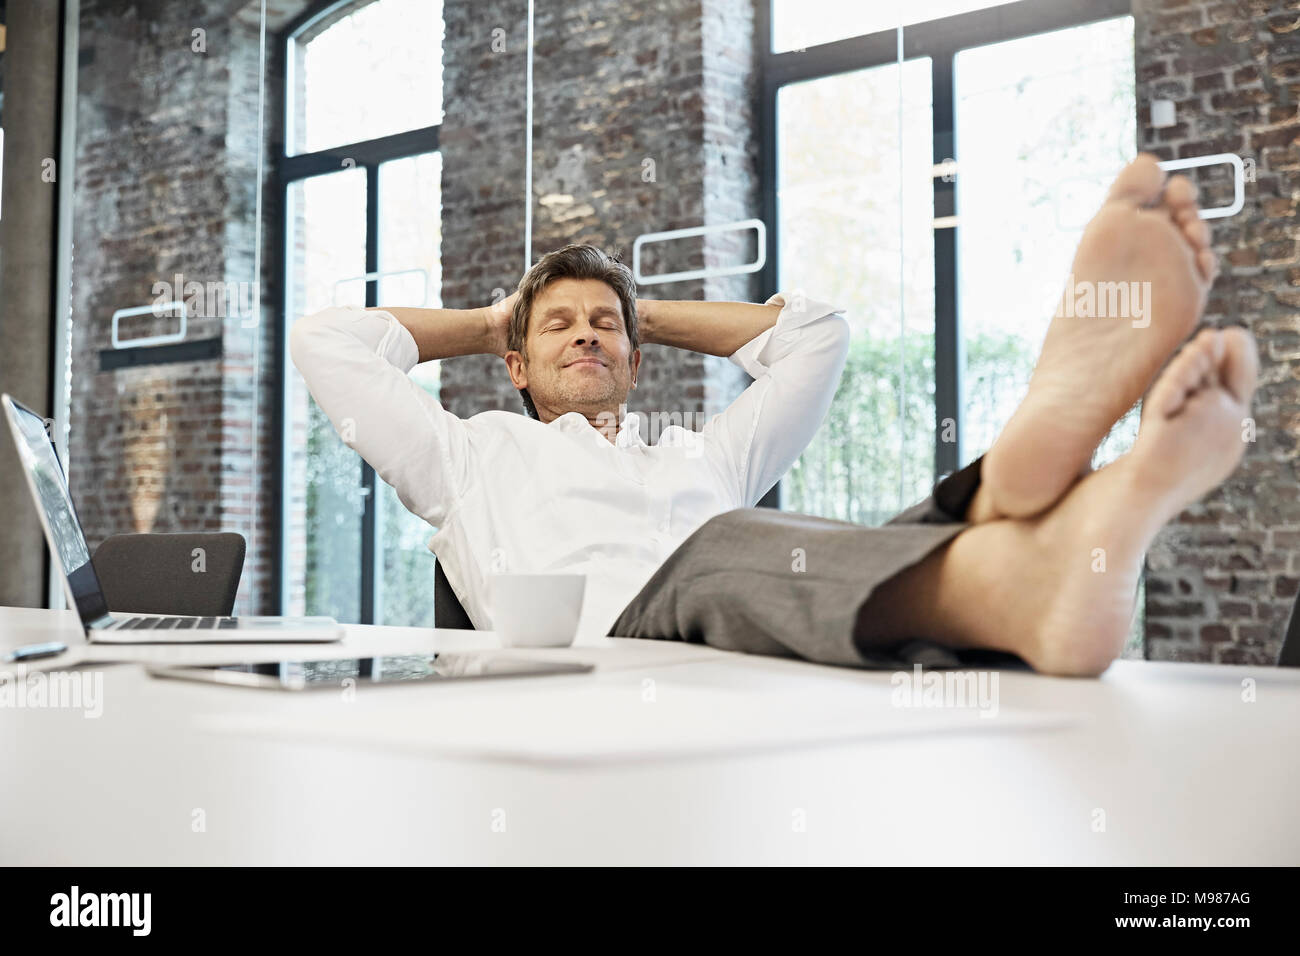 Barefooted businessman relaxing in conference room of modern office - Stock Image